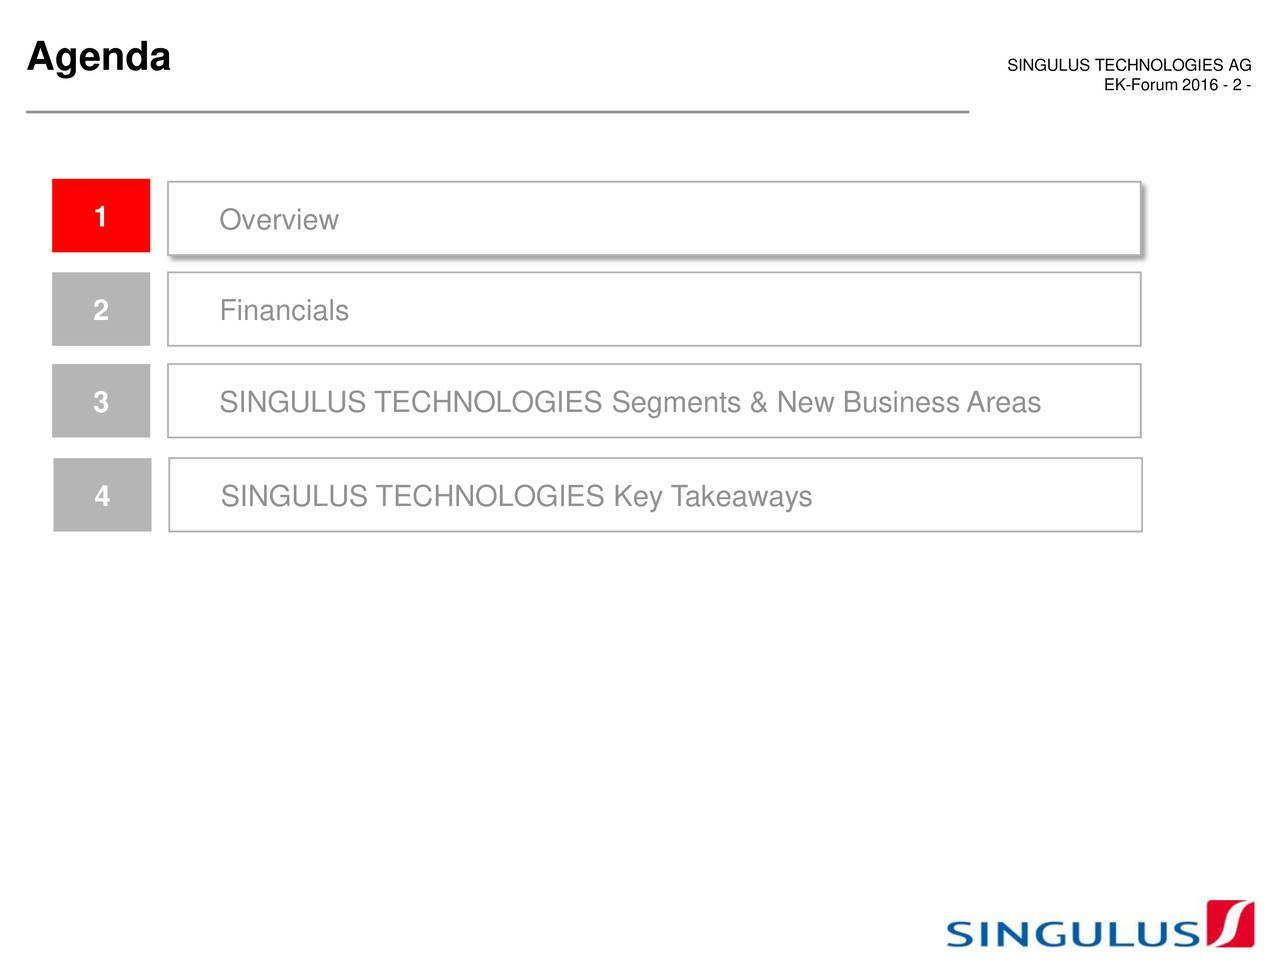 1 Overview 2 Financials 3 SINGULUS TECHNOLOGIES Segments & New Business Areas 4 SINGULUS TECHNOLOGIES Key Takeaways